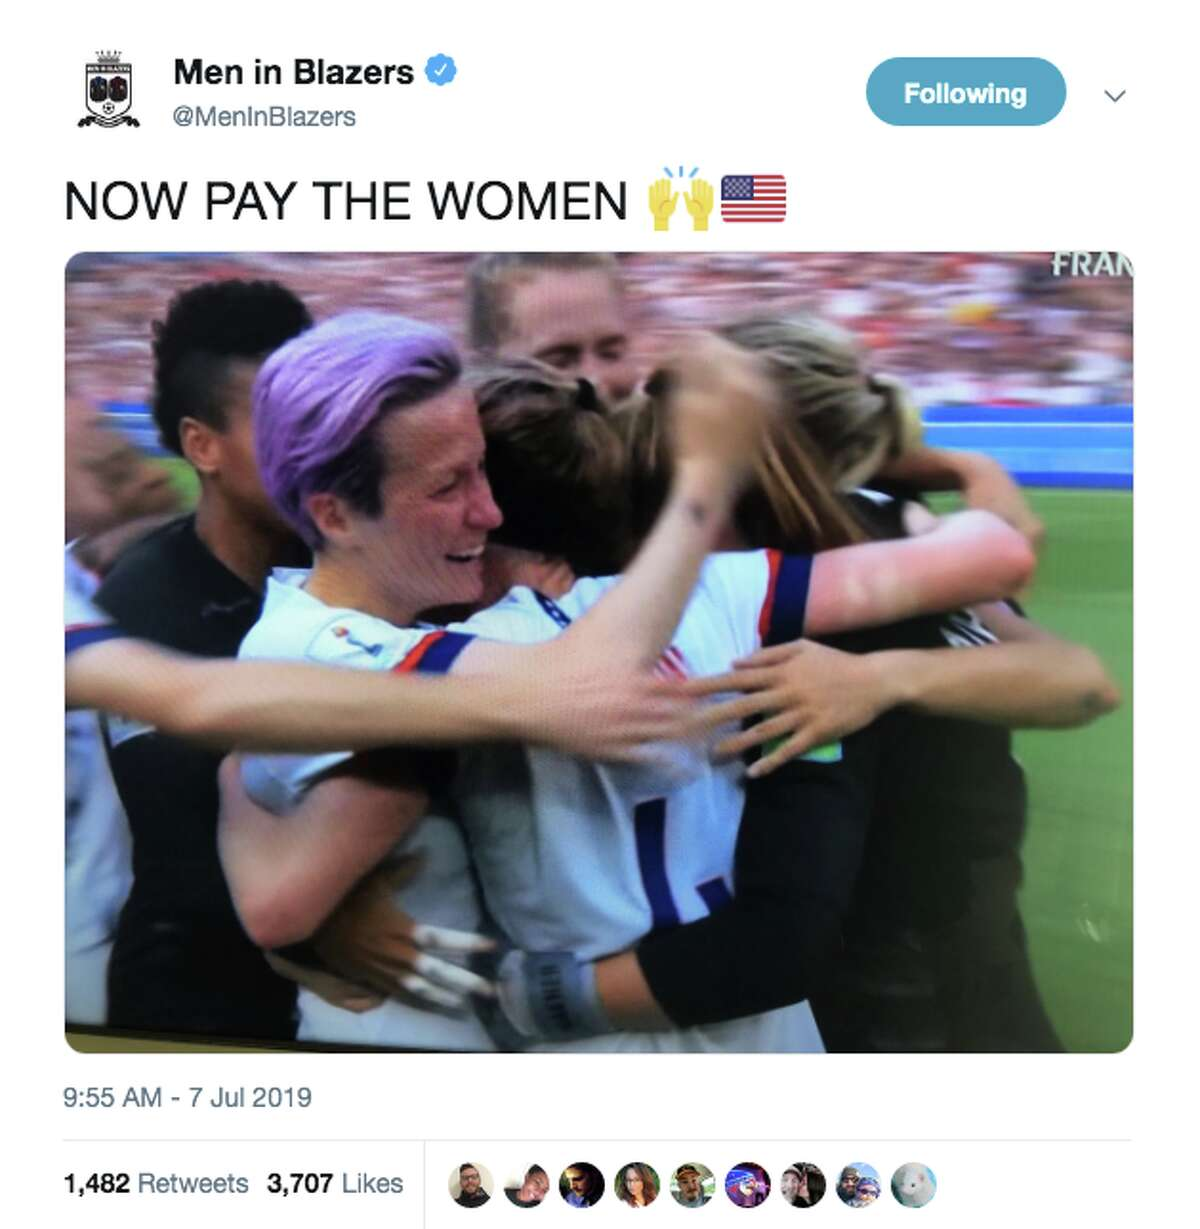 The internet went wild for the United States winning the Women's World Cup over the Netherlands on July 7, 2019.